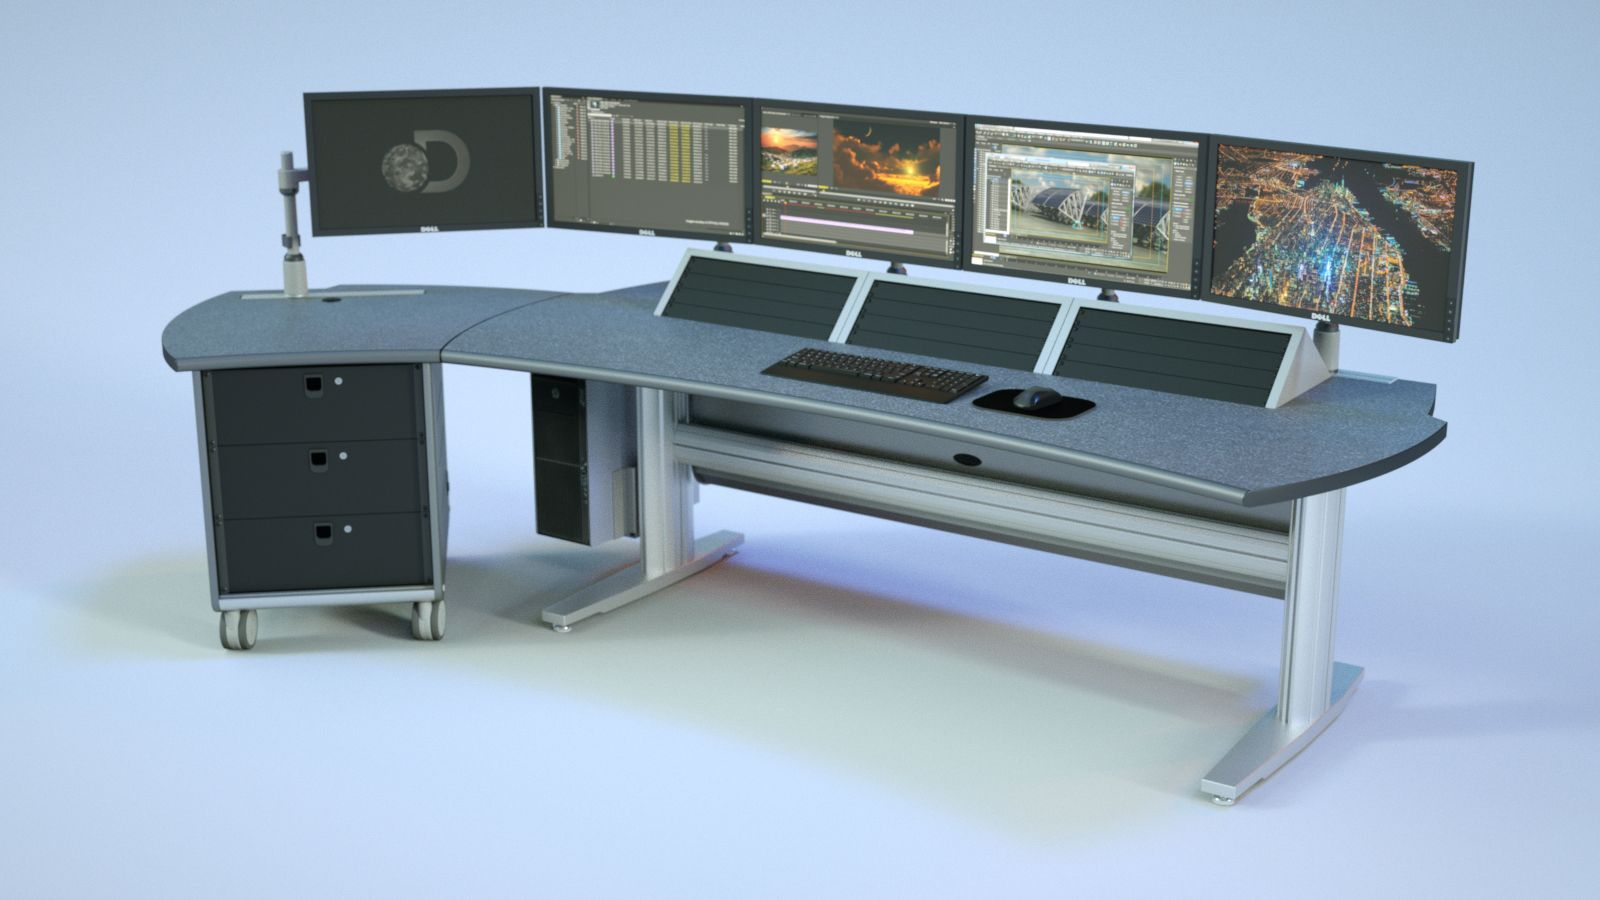 Creating Space For New Technology Technical Furniture For Broadcast Video Production Post Production Edit Security Create Space Process Control Furniture